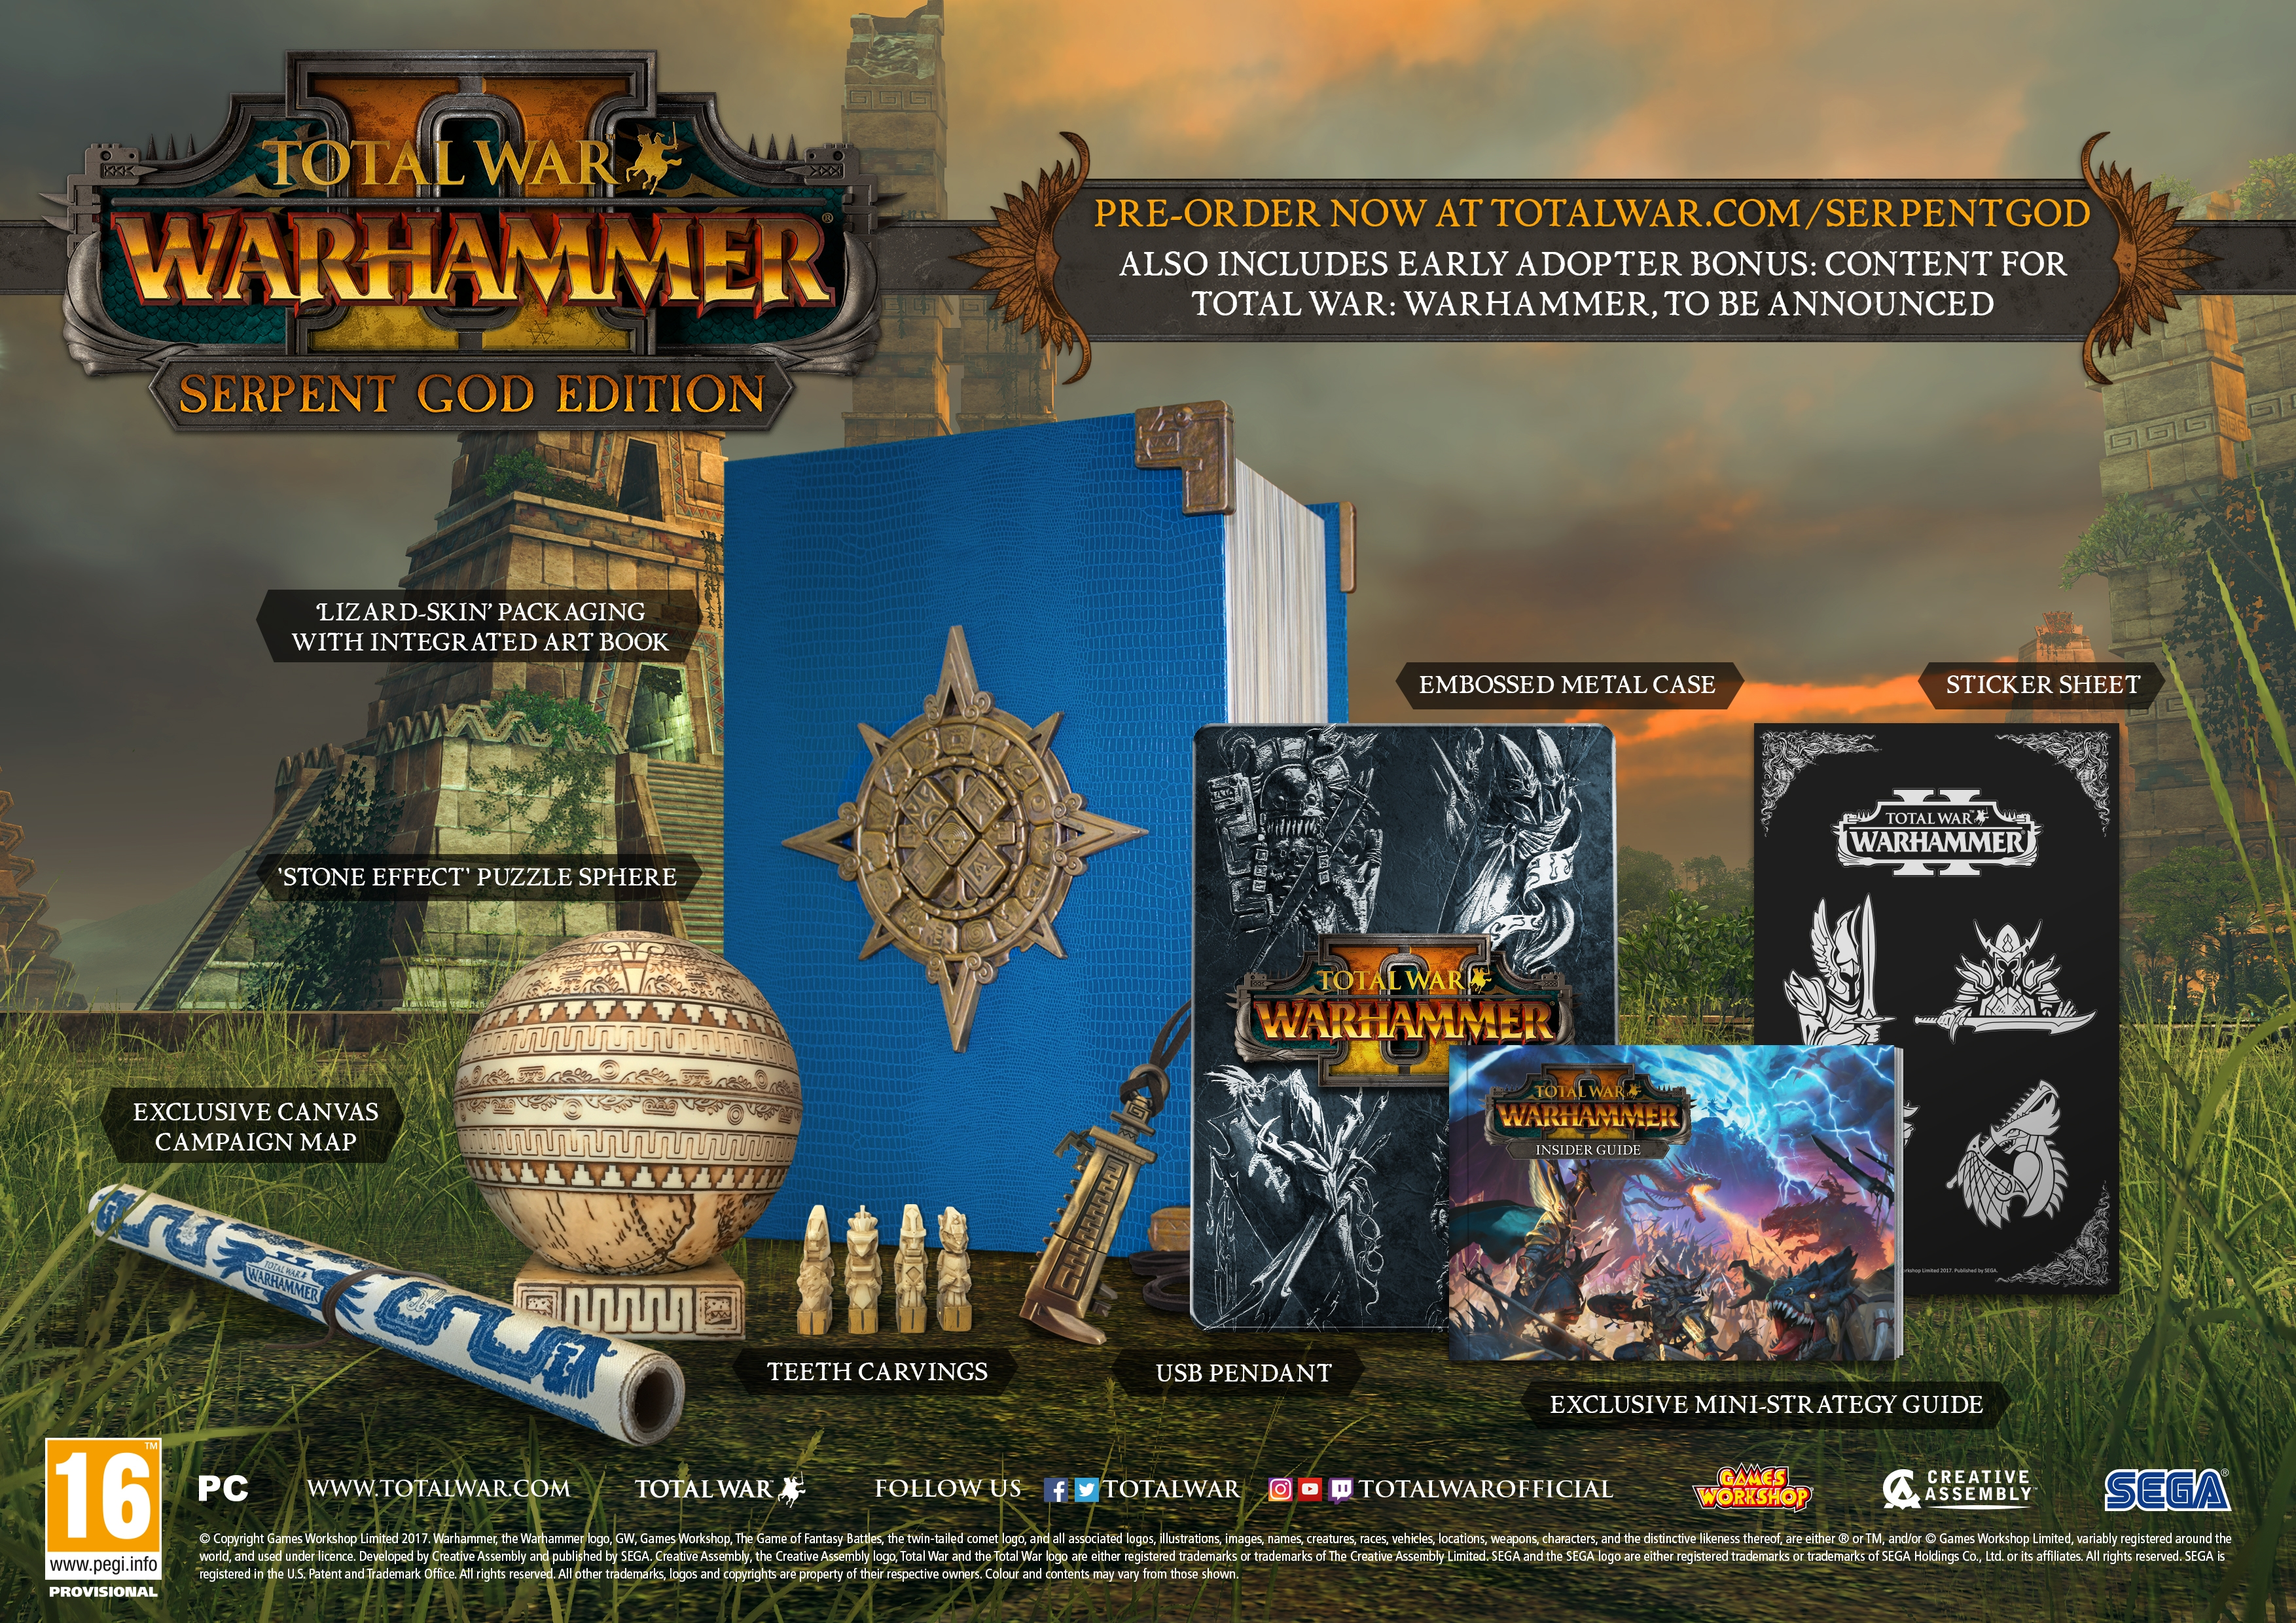 WARHAMMER II Release Date and Serpent God Edition Details